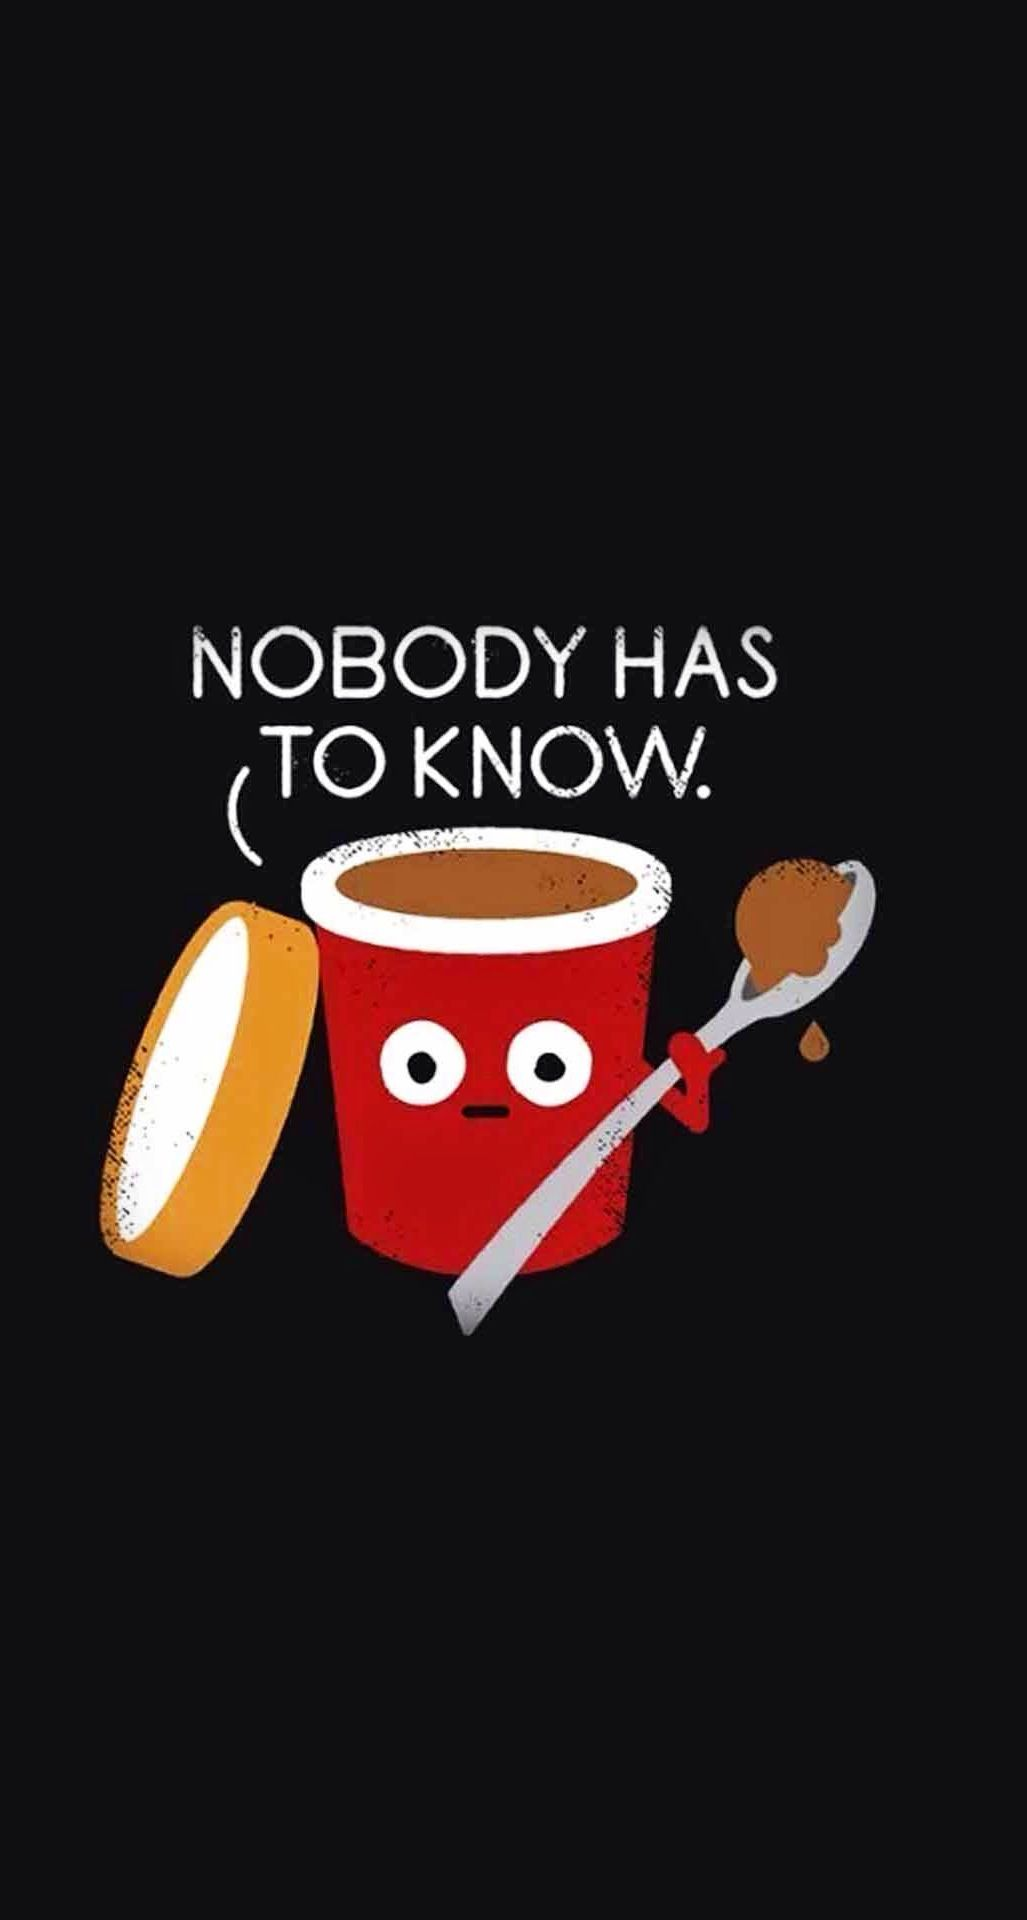 No Body Has To Know Funny Cartoon Iphone Wallpapers Mobile9